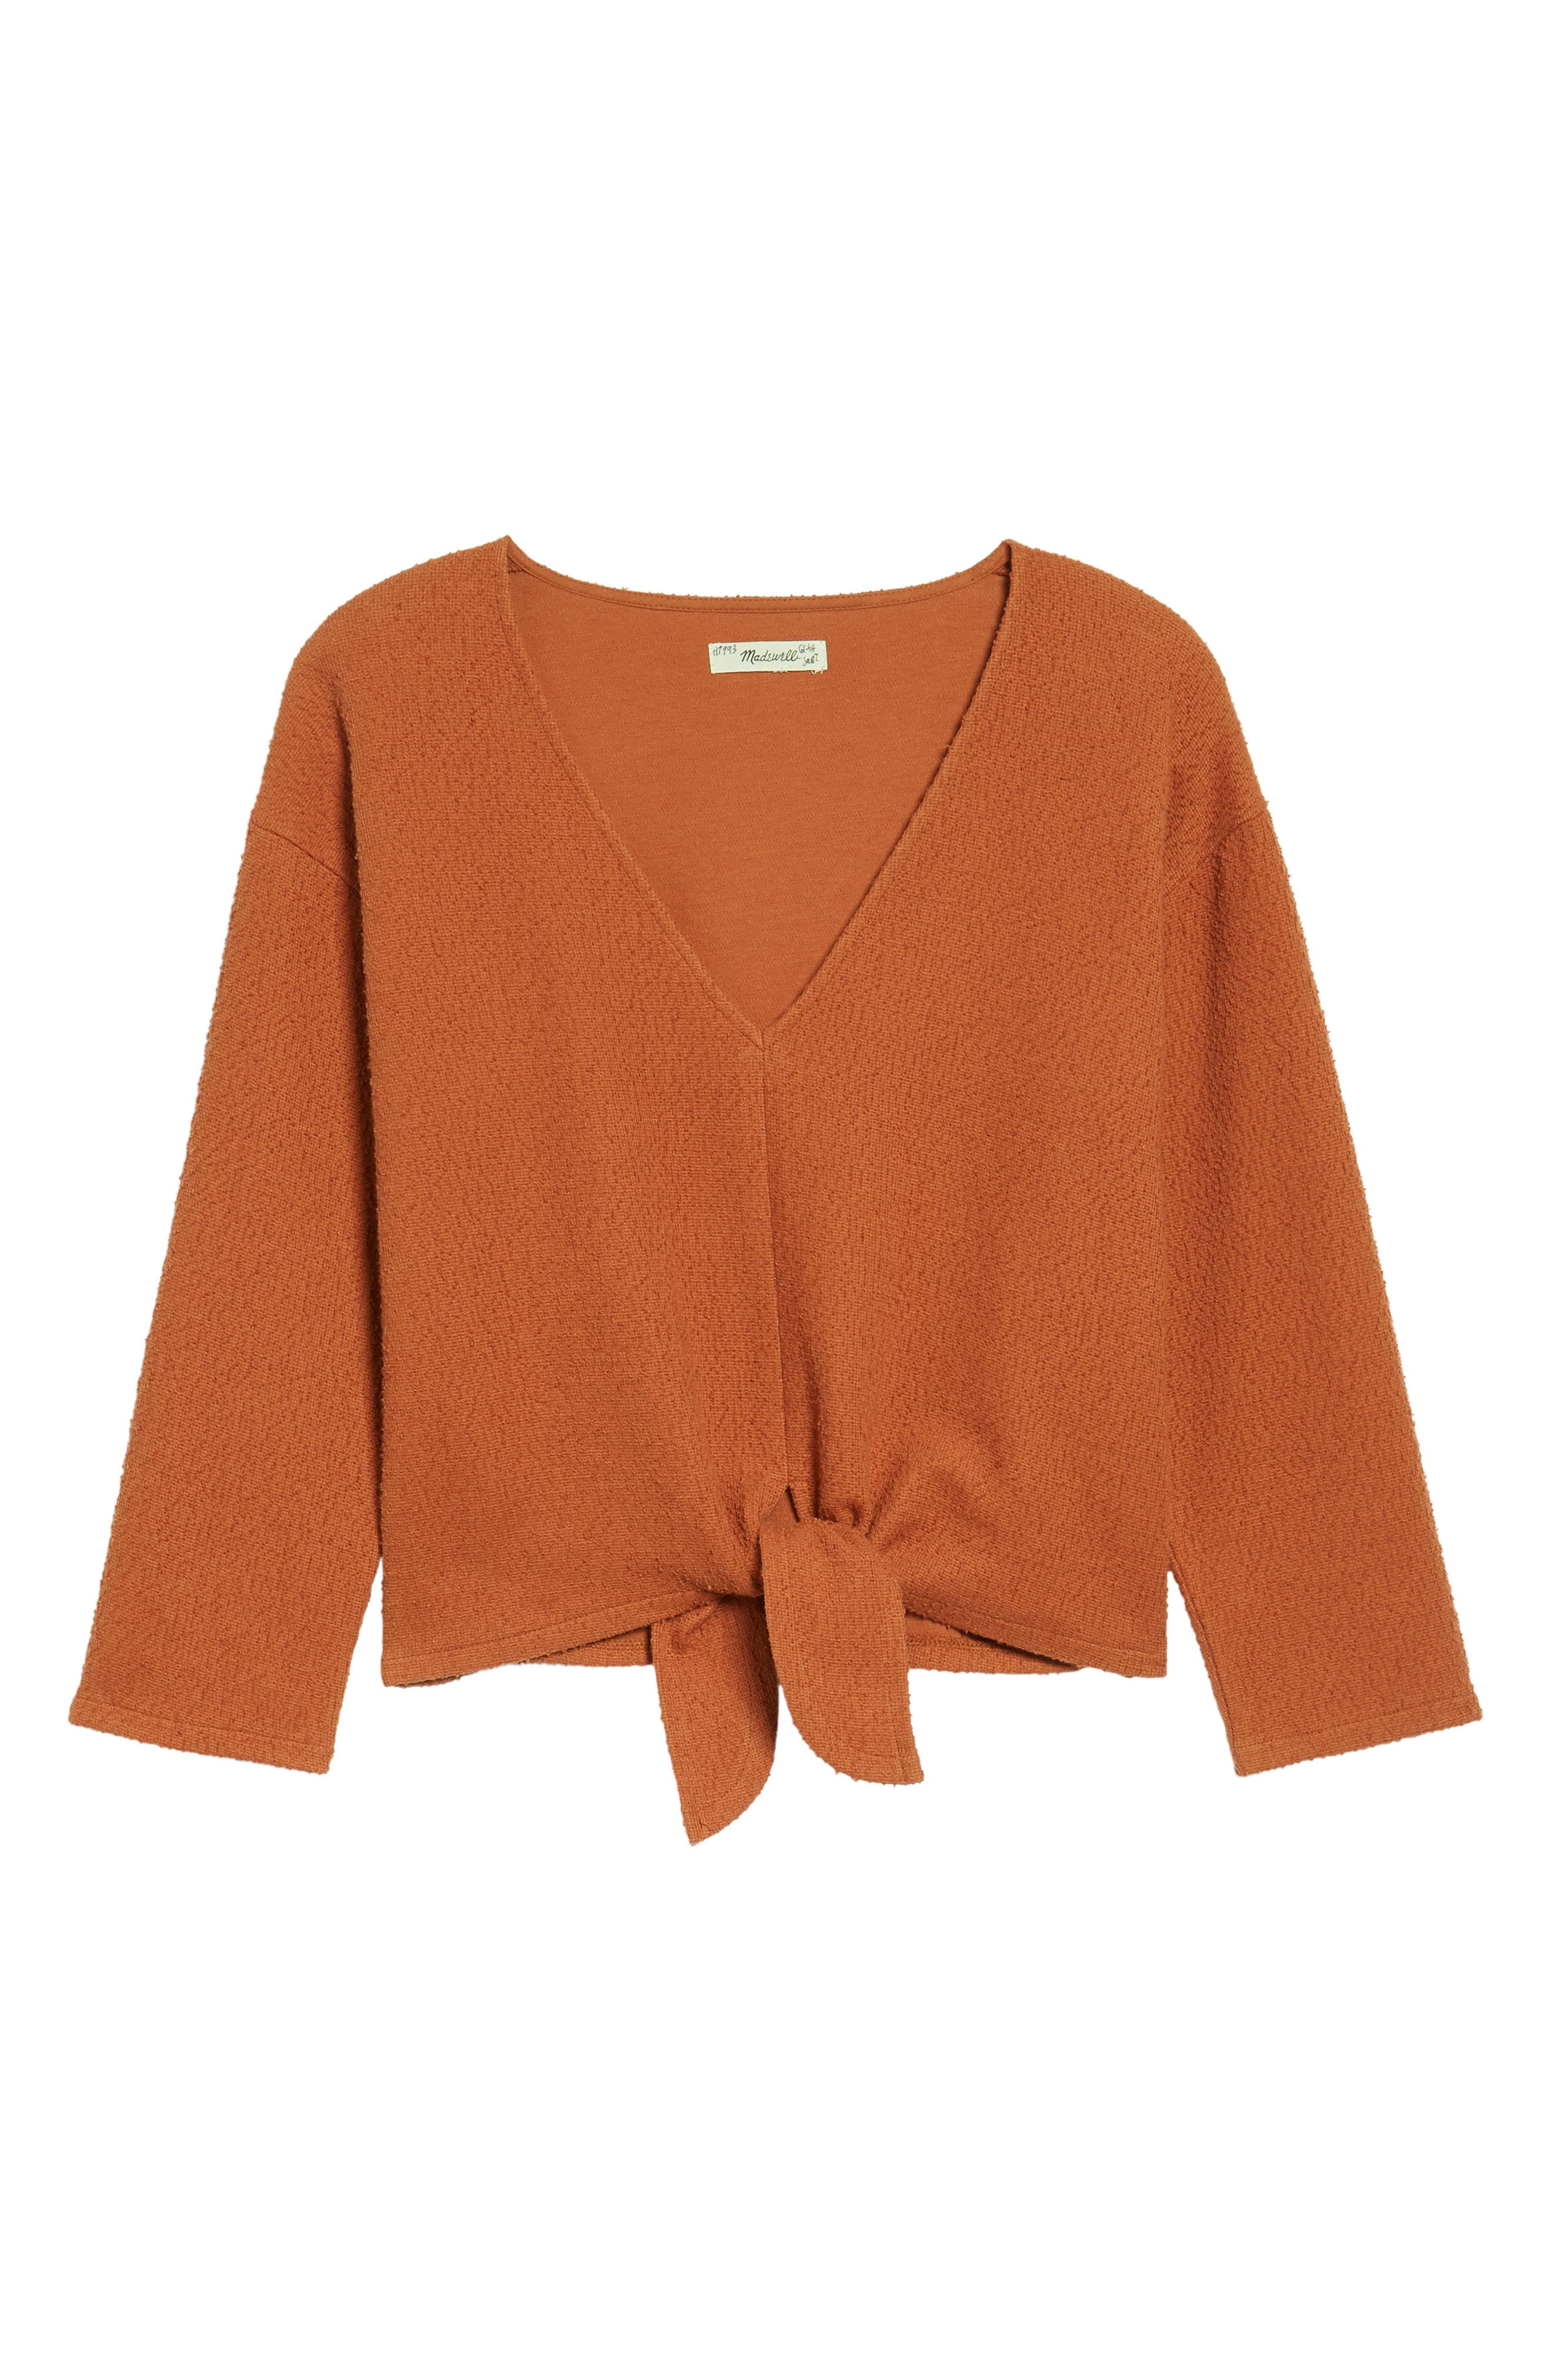 Main Image - Madewell Textured Tie Front Top